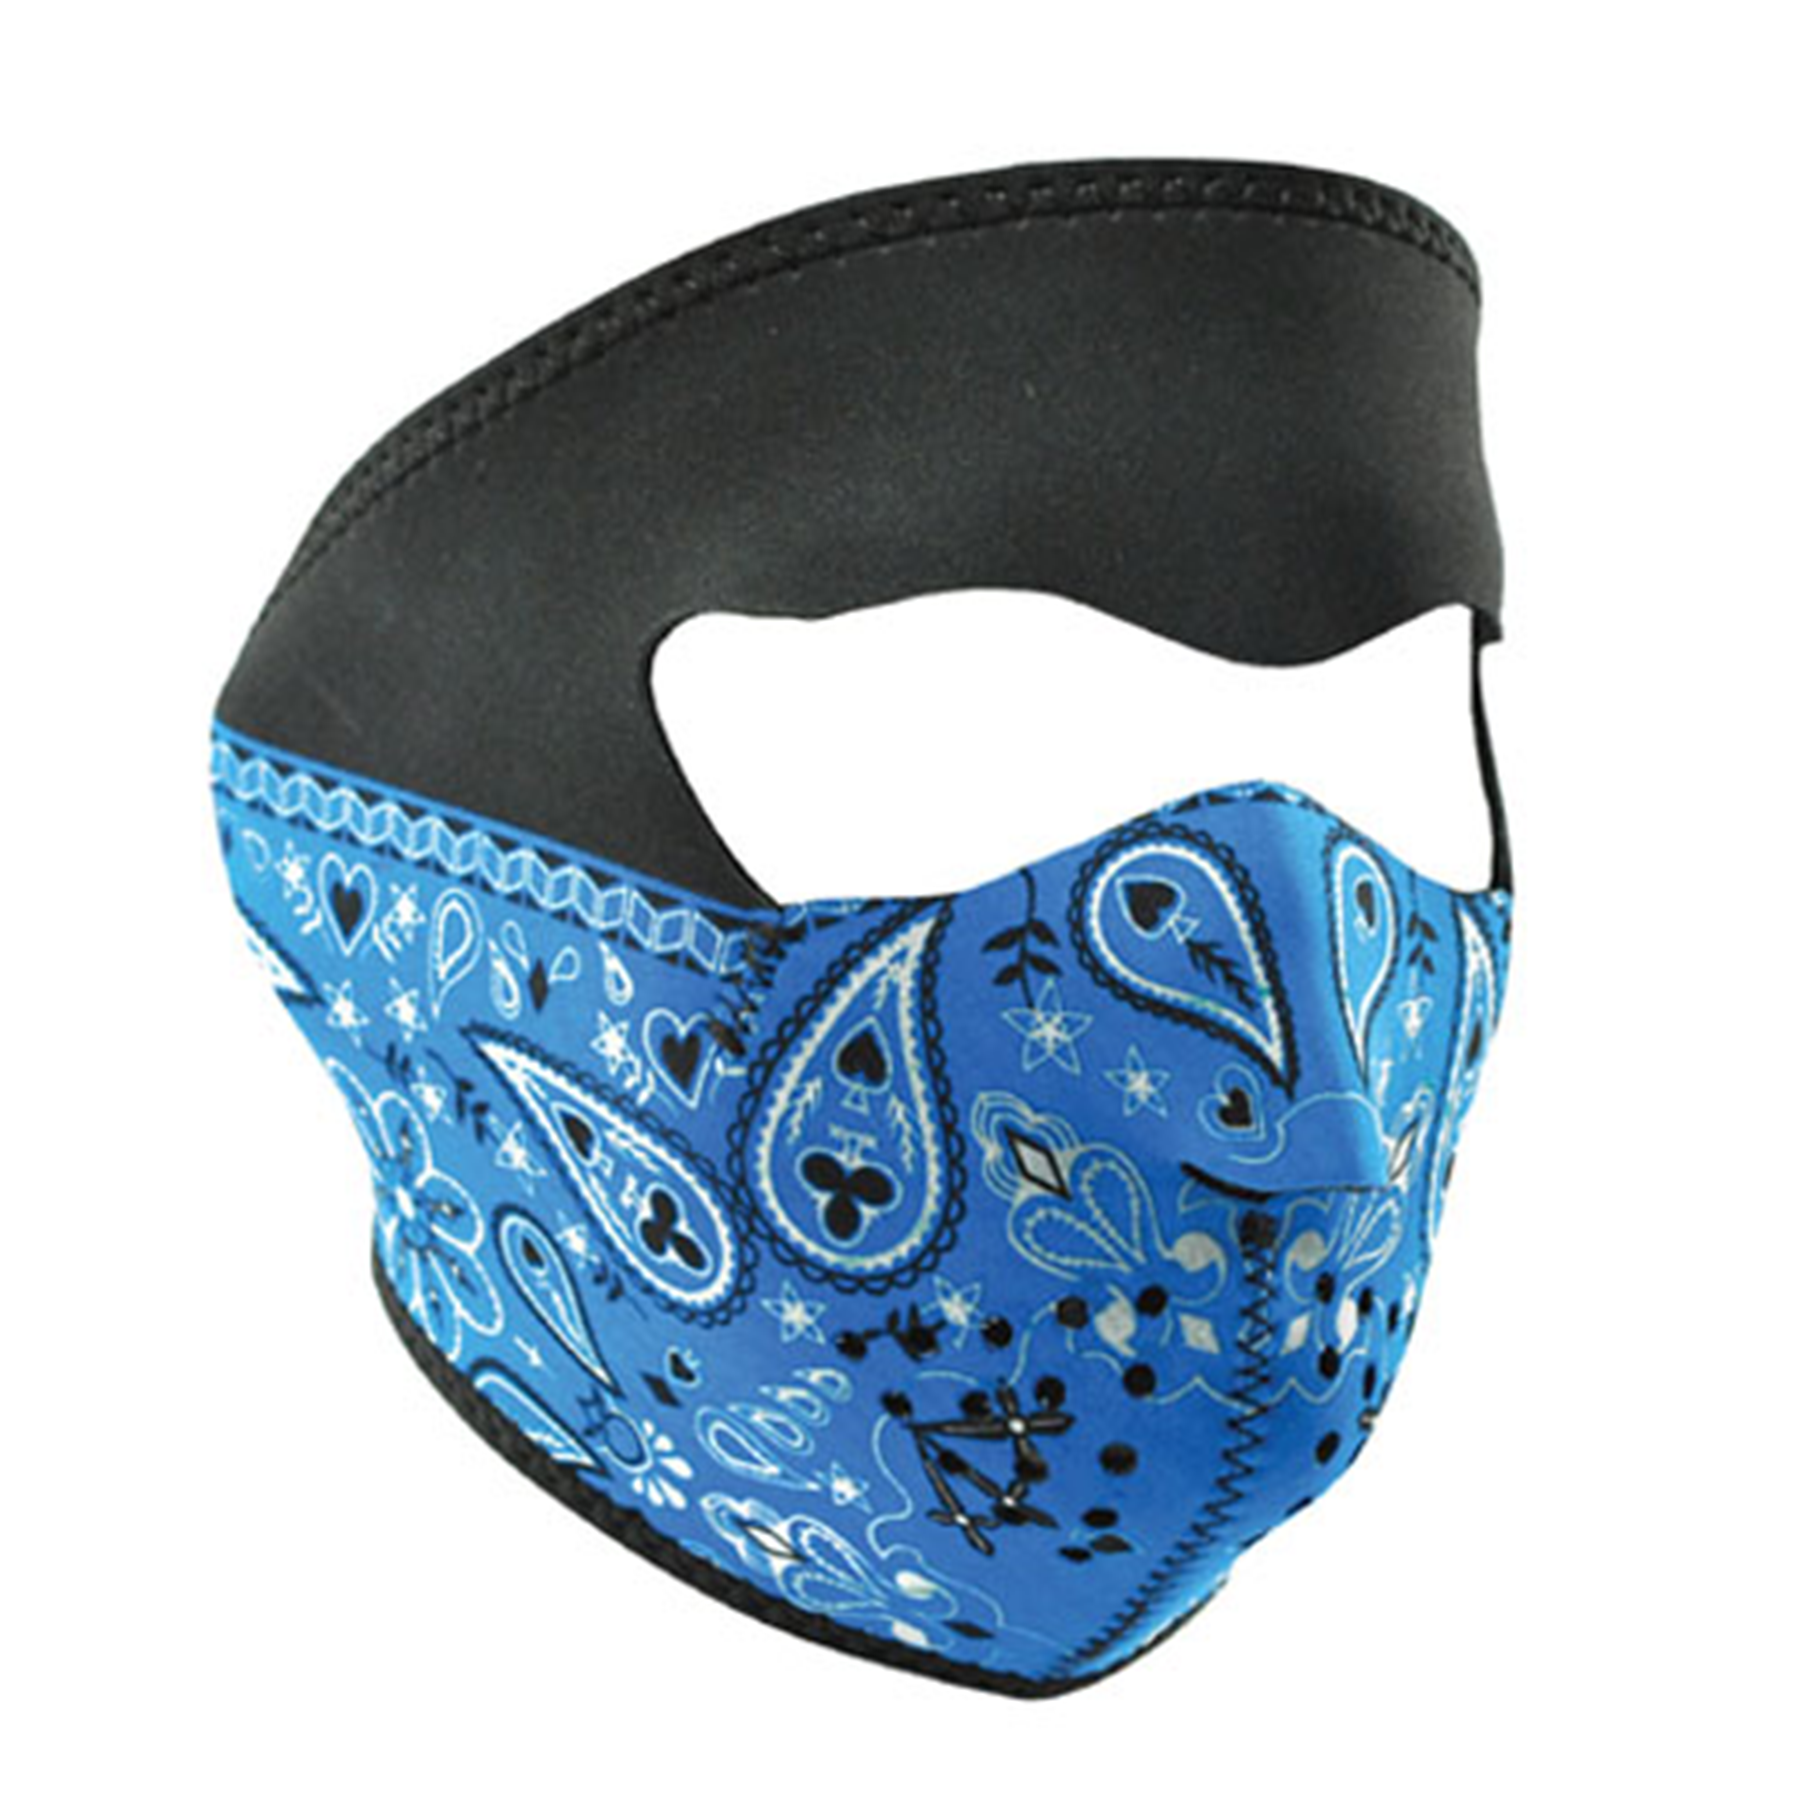 NEOPRENE FACE MASK, BLUE PAISLEY BANDANNA